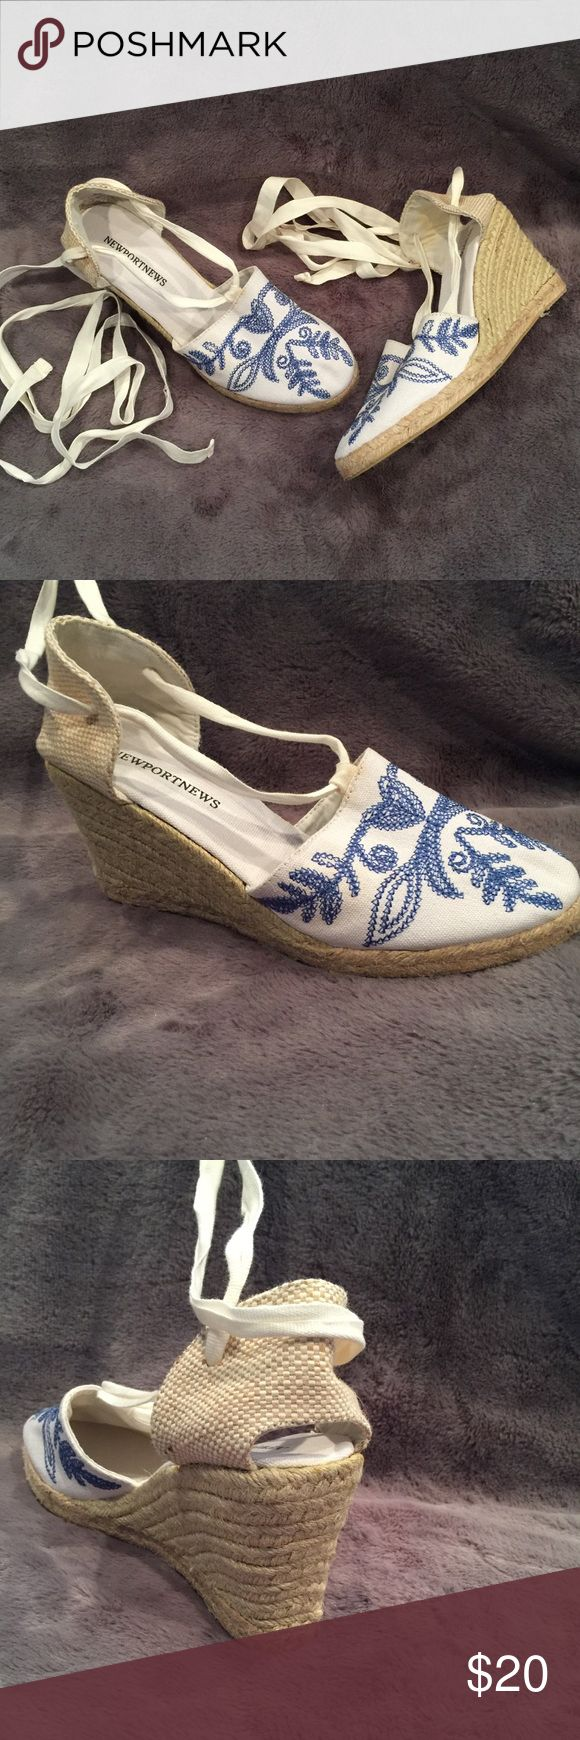 Lace up wedges Newport News high heels. Brand new. White and blue embroidered closed toe platforms. Has a nautical theme to it with roping around the heel. Has long straps to lace up or wrap around the leg. Small hole in the heel for a little sexy look. Newport News Shoes Espadrilles